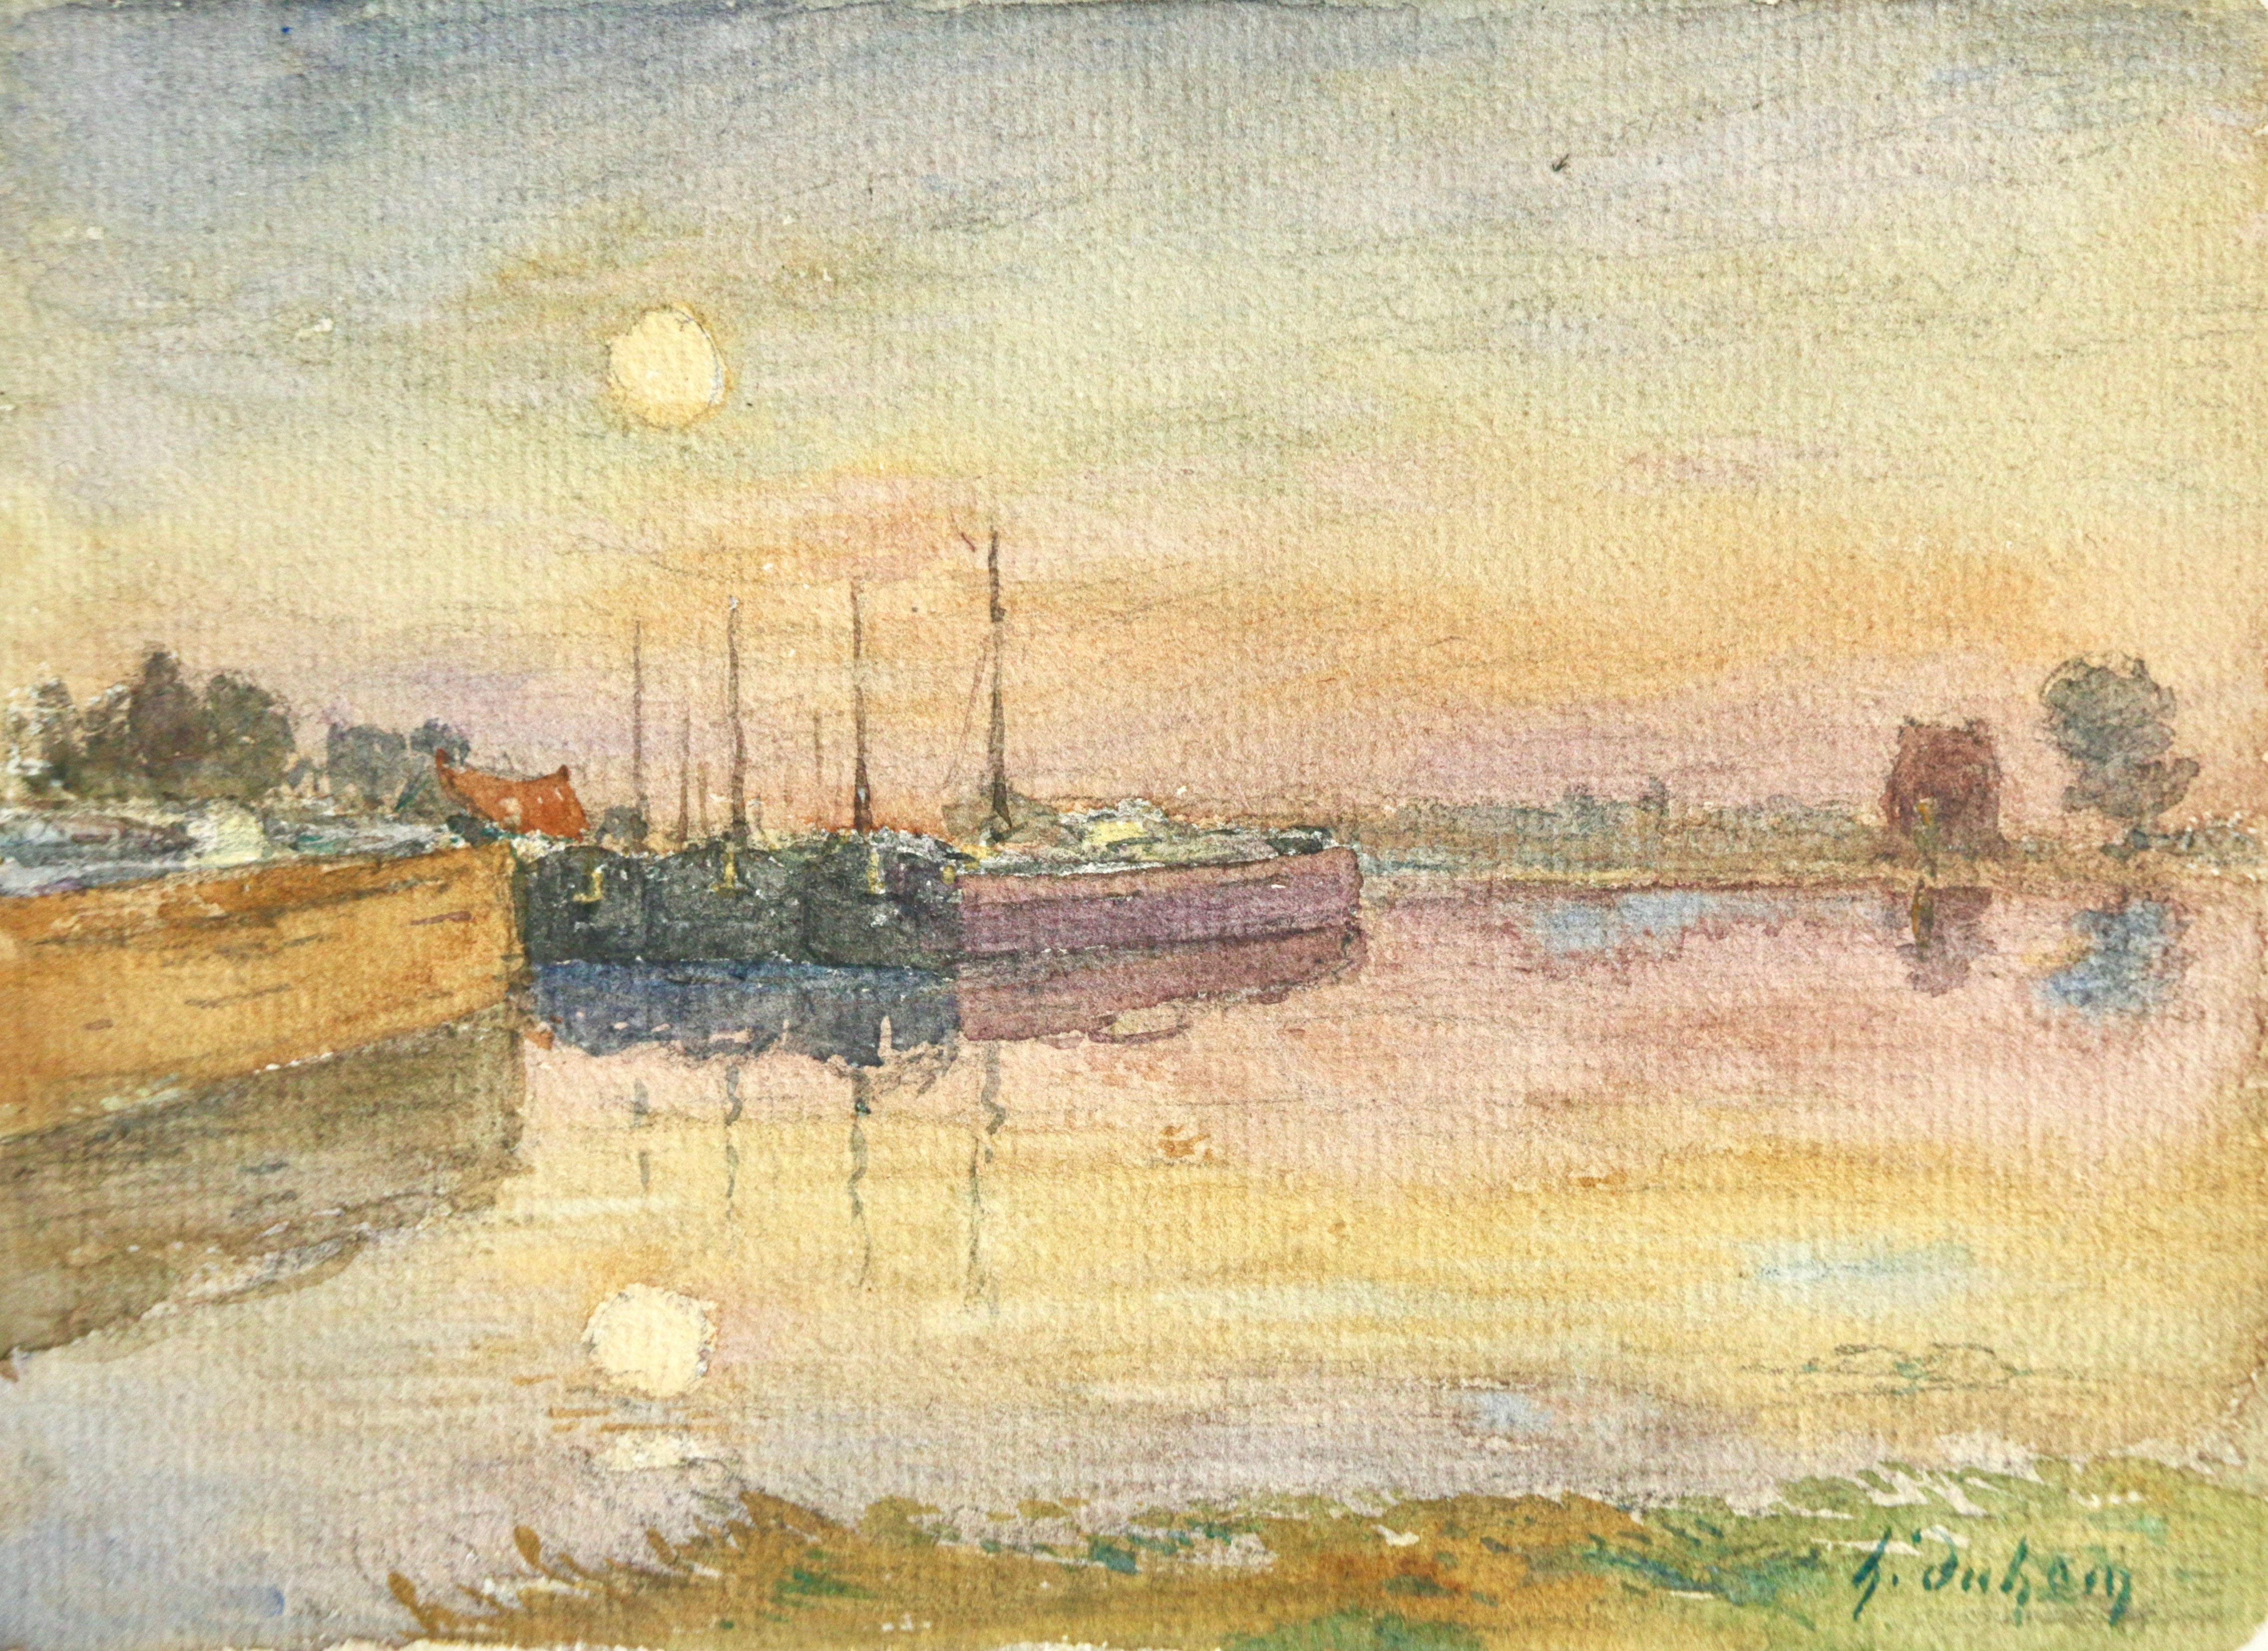 Barges at Sunset - 19th Century Watercolor, Boats on River in Landscape by Duhem